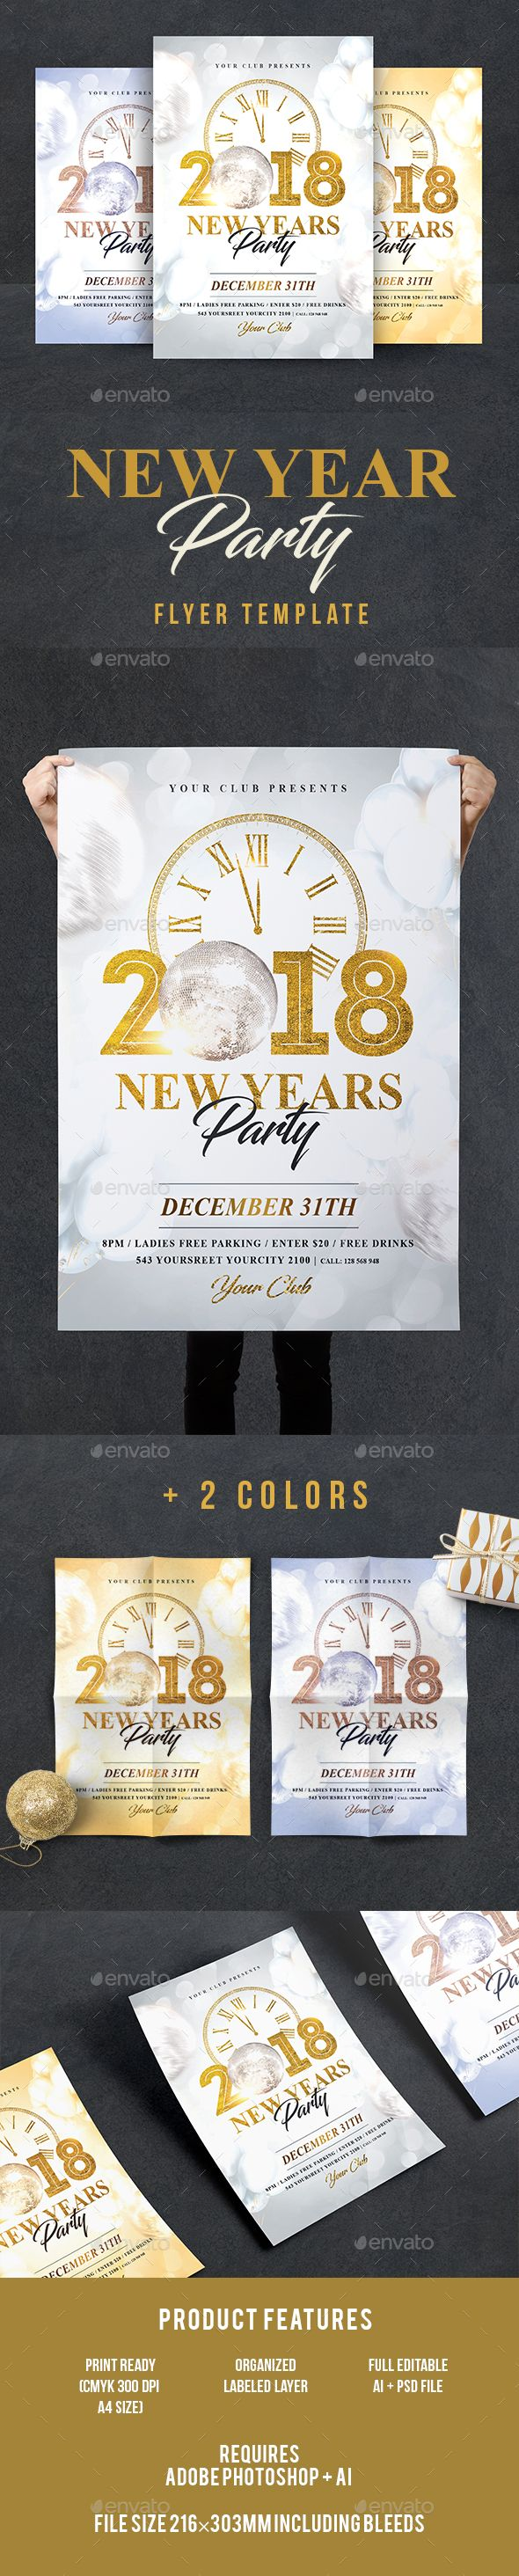 New Year Flyer | Text fonts, Event flyers and Design posters